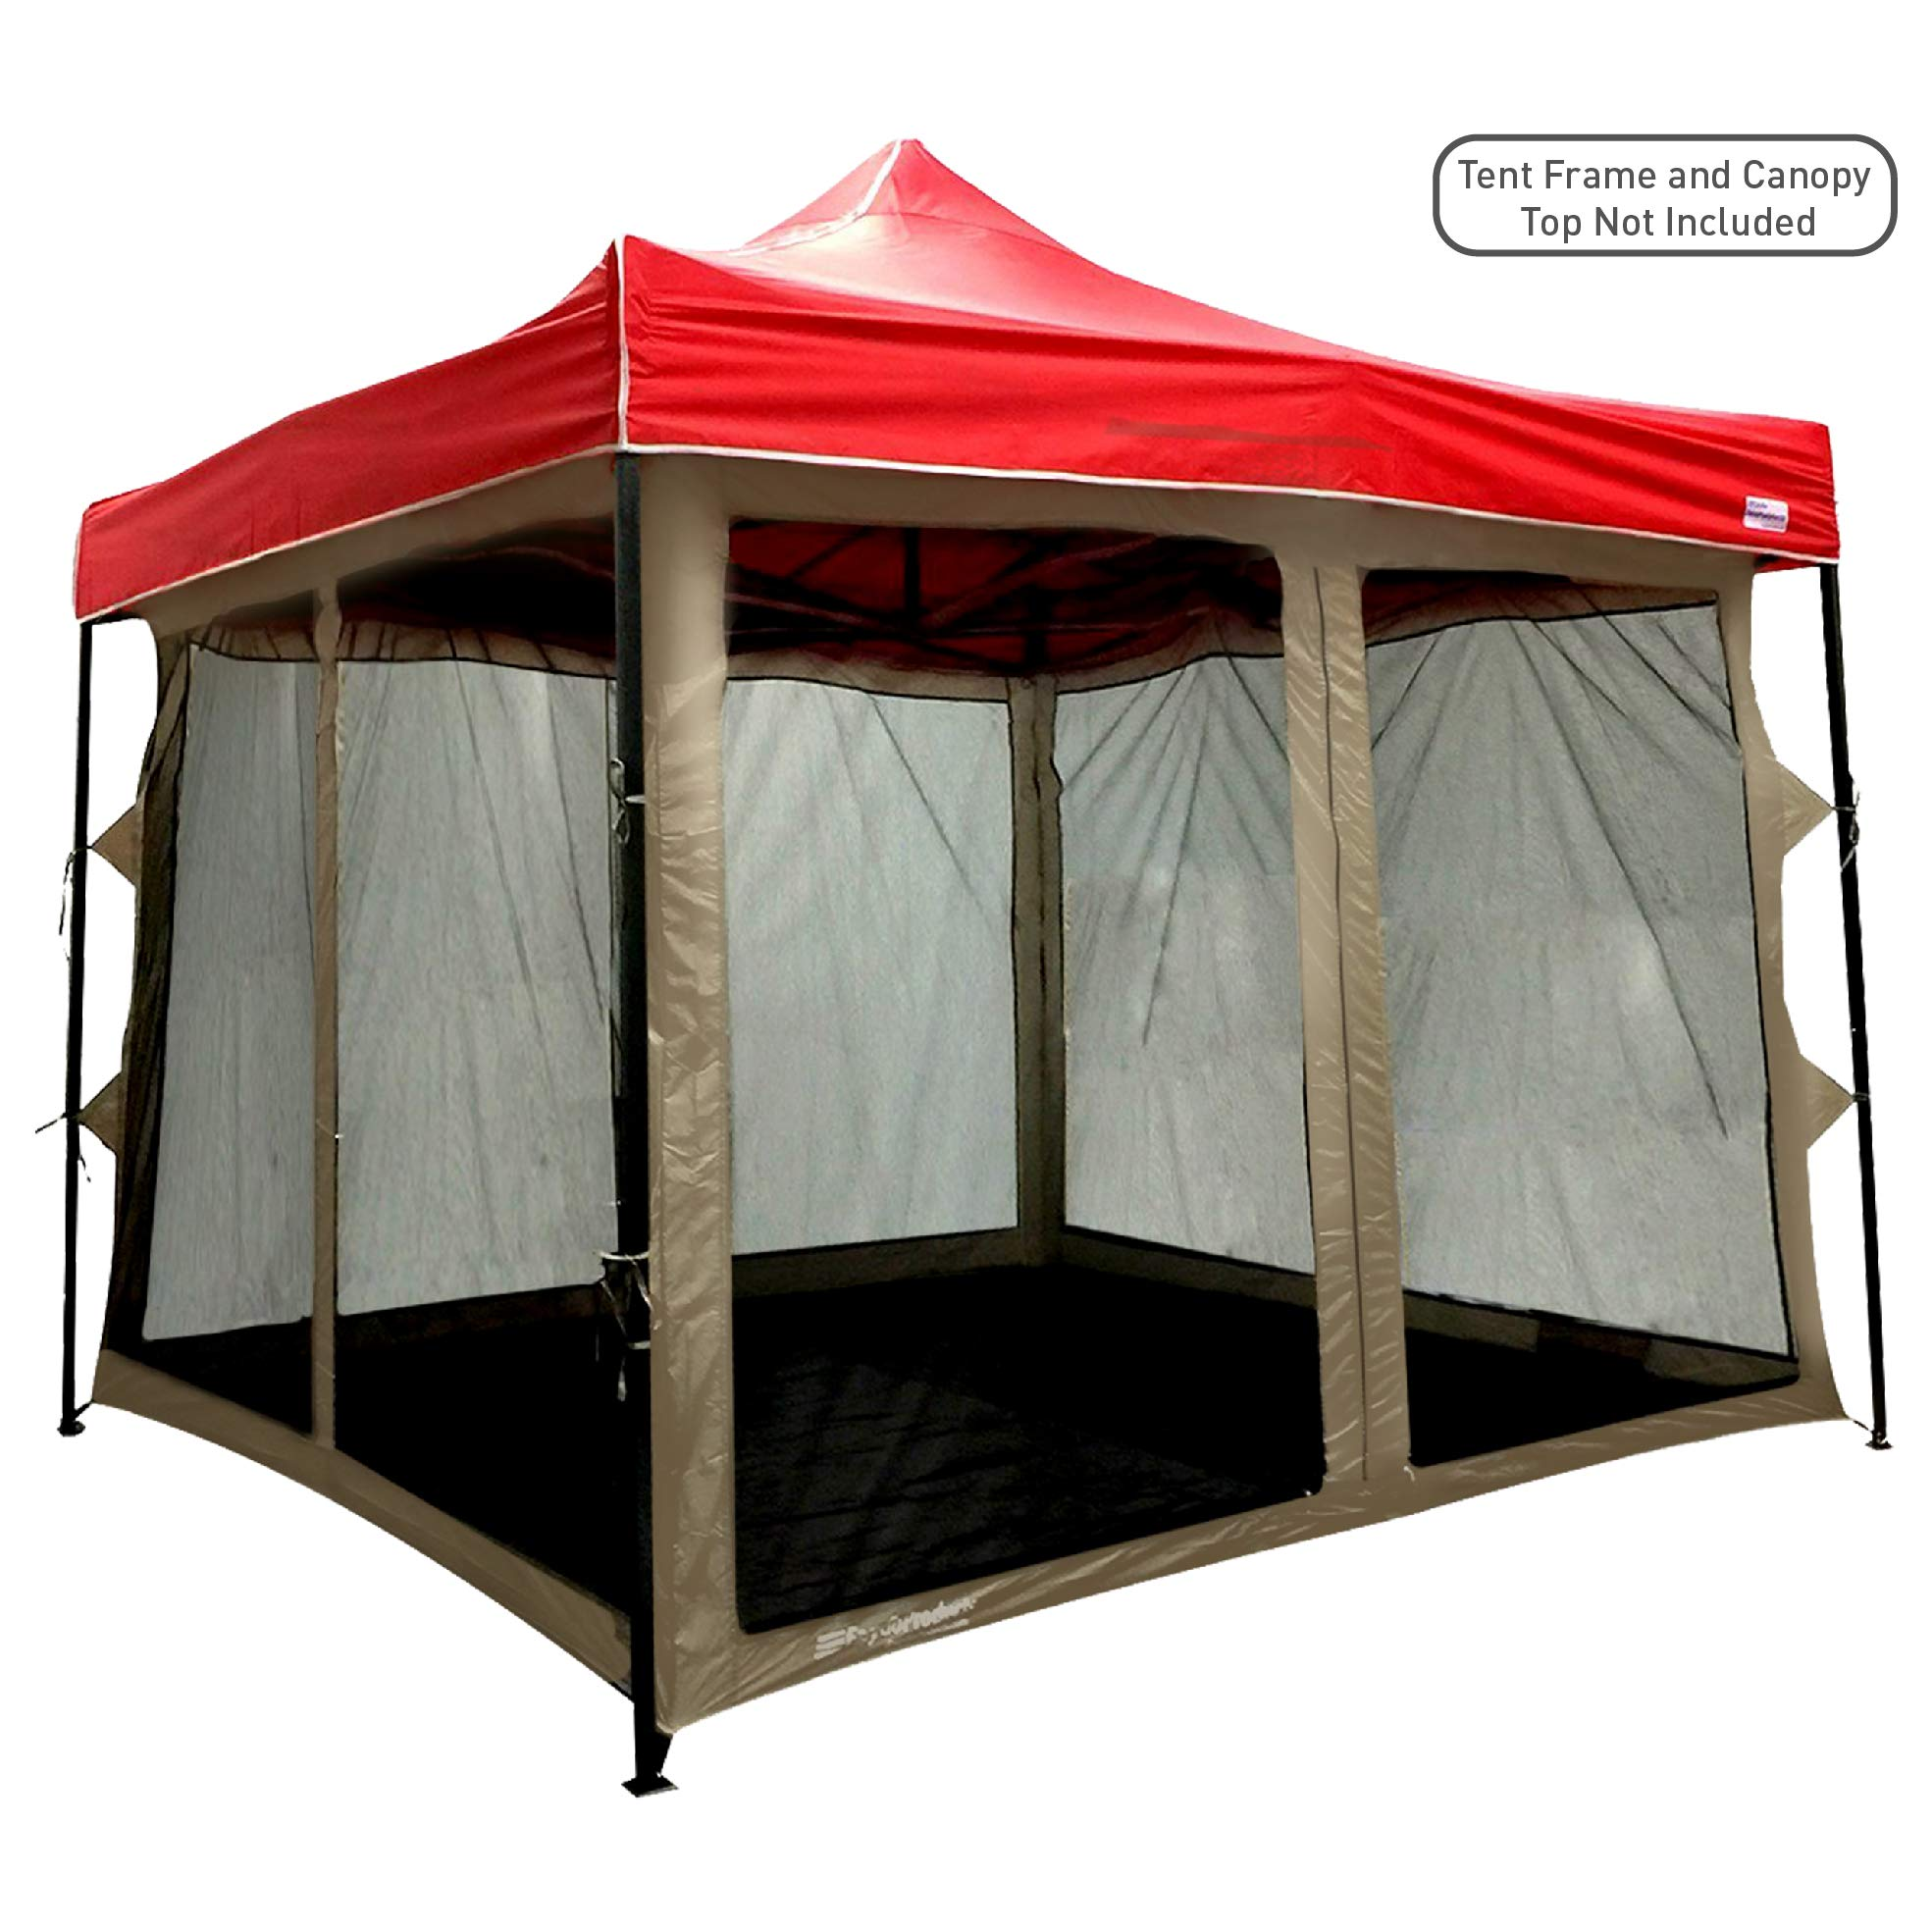 EasyGoProducts Screen Room attaches to Any 10'x10' Pop Up Screen Tent Room - 4 Walls, Mesh Ceiling, PVC Floor, Two Doors, Four Windows - Standing Tent - Tent Room - Tent Frame and Canopy NOT Included by EasyGoProducts